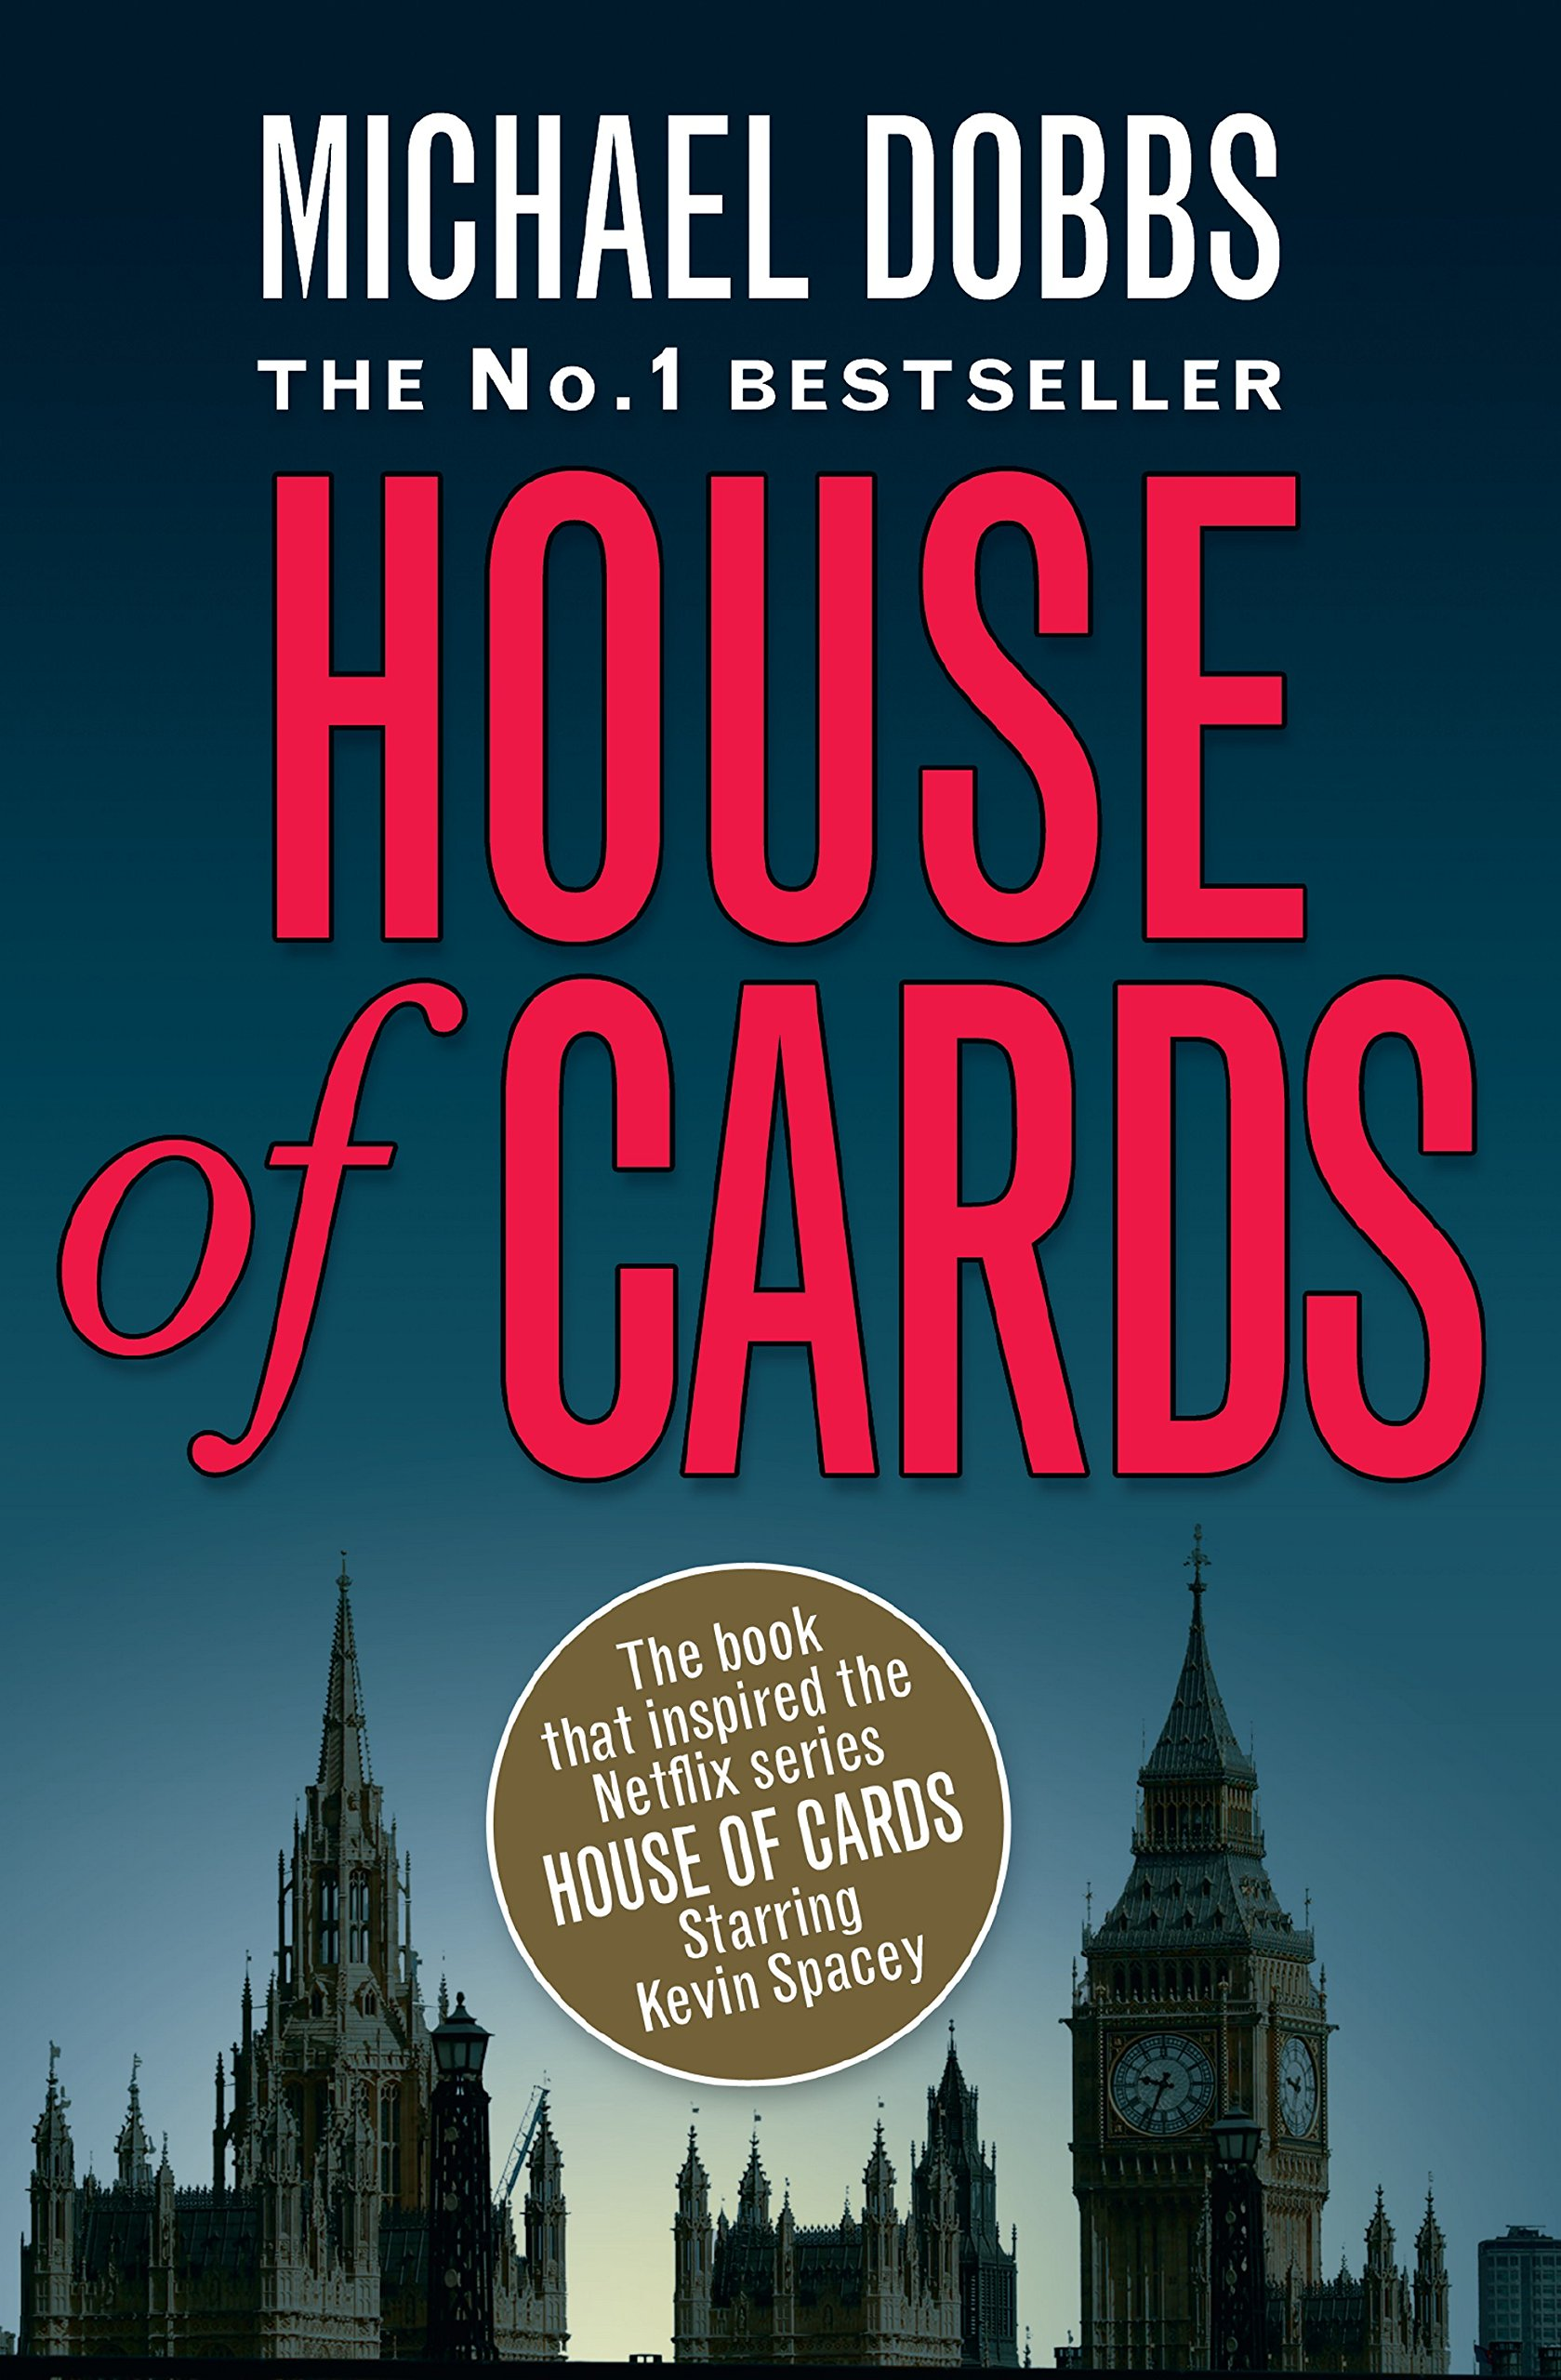 Buy House Of Cards Book Online At Low Prices In India  House Of Cards  Reviews & Ratings  Amazon